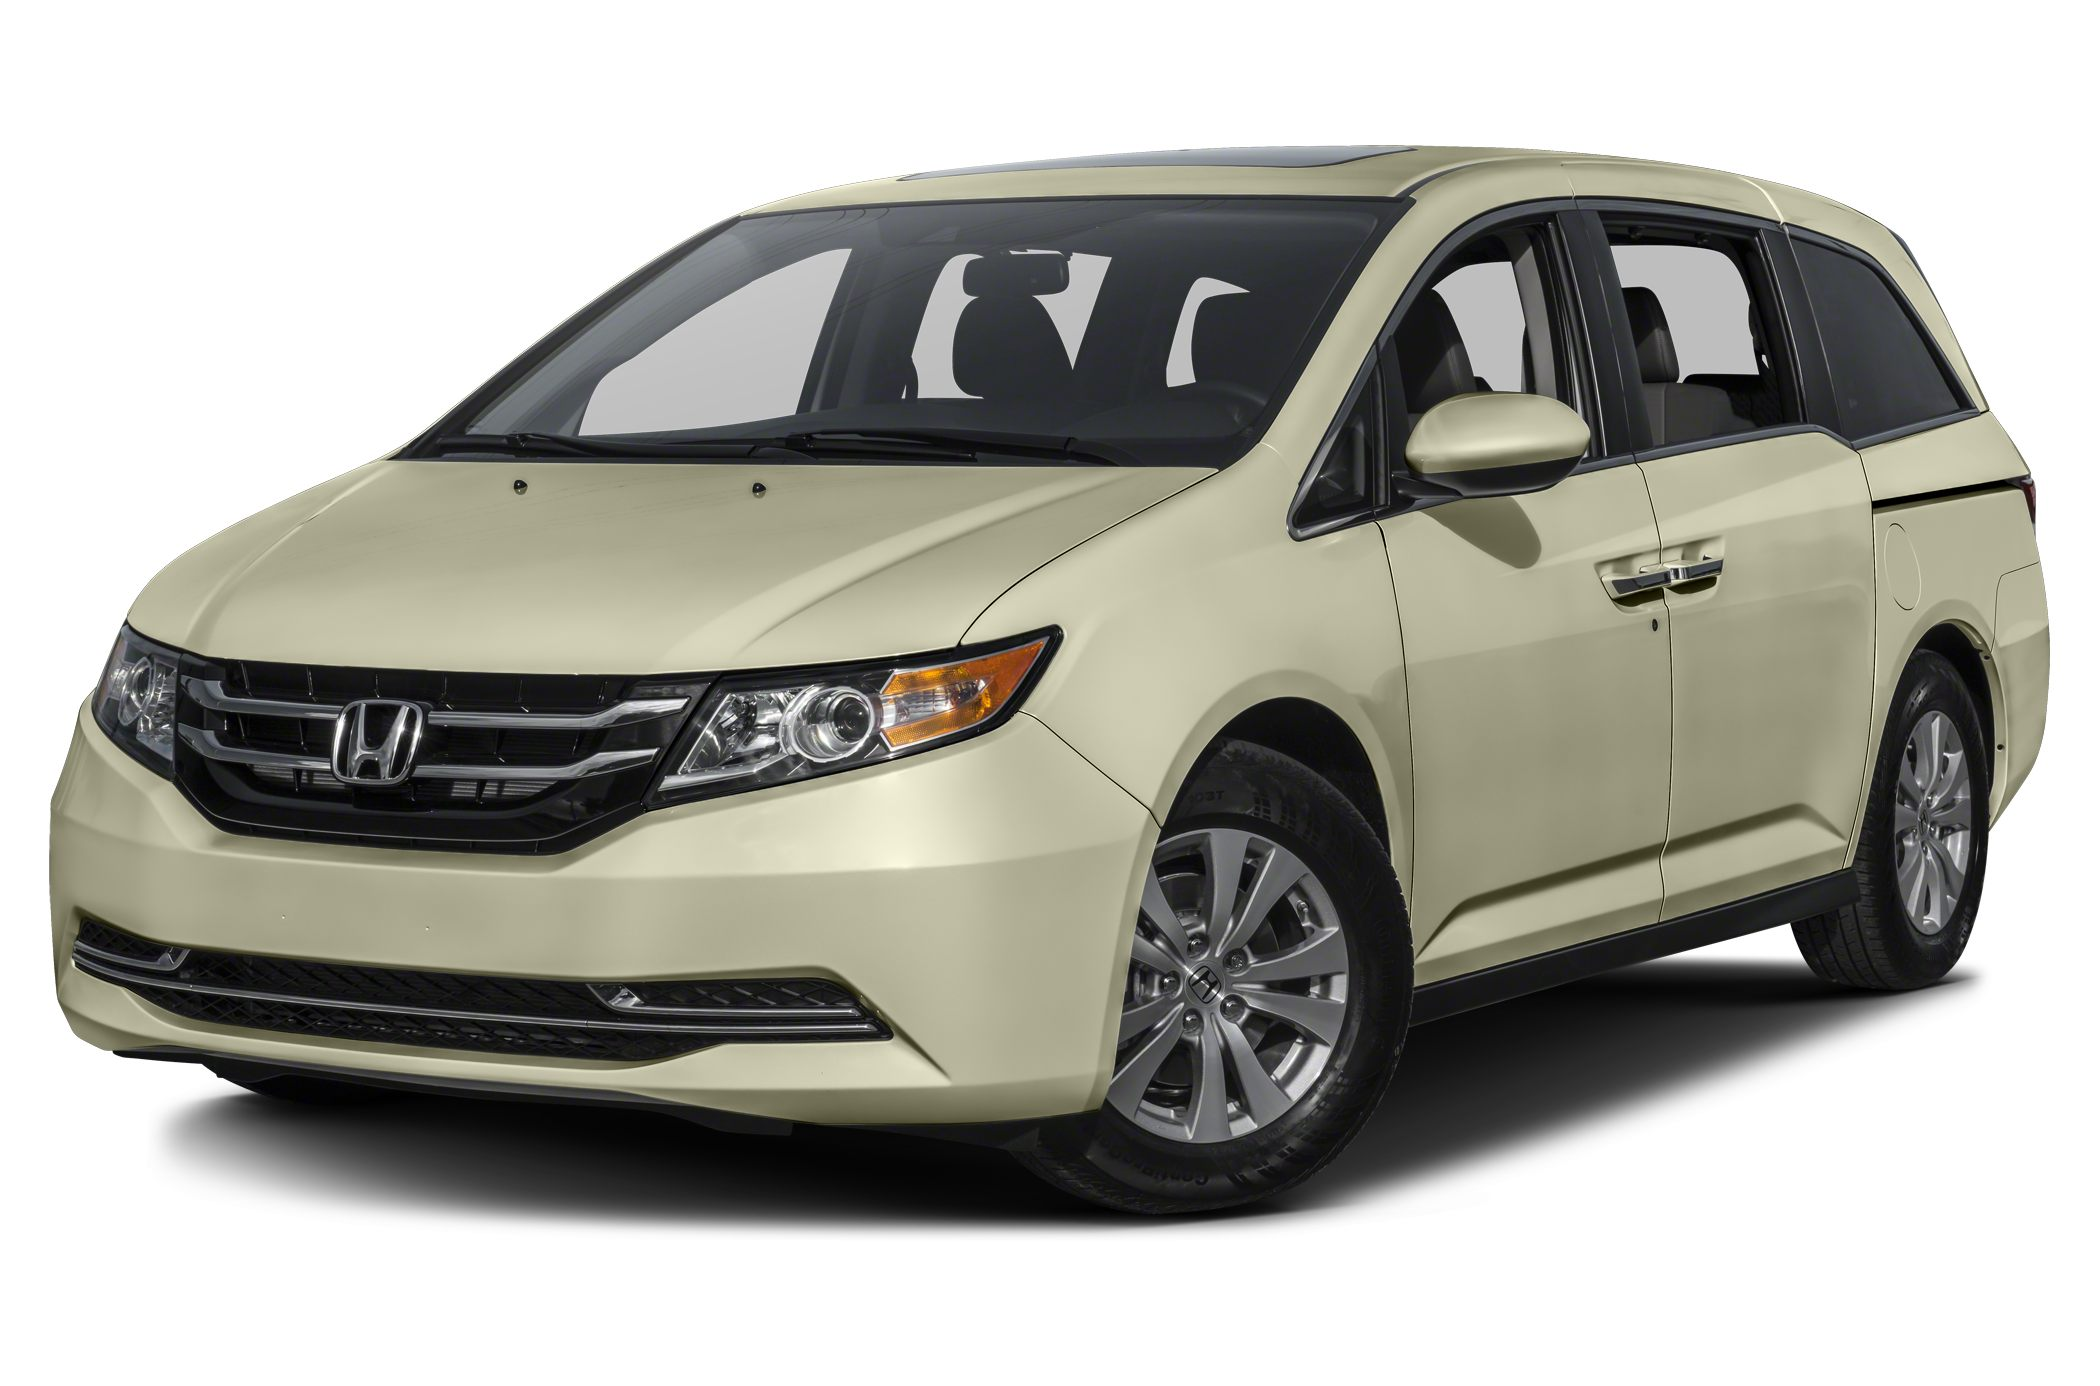 2016 Honda Odyssey EX-L Lifetime Oil Changes Included offers you even greater value and WE help y